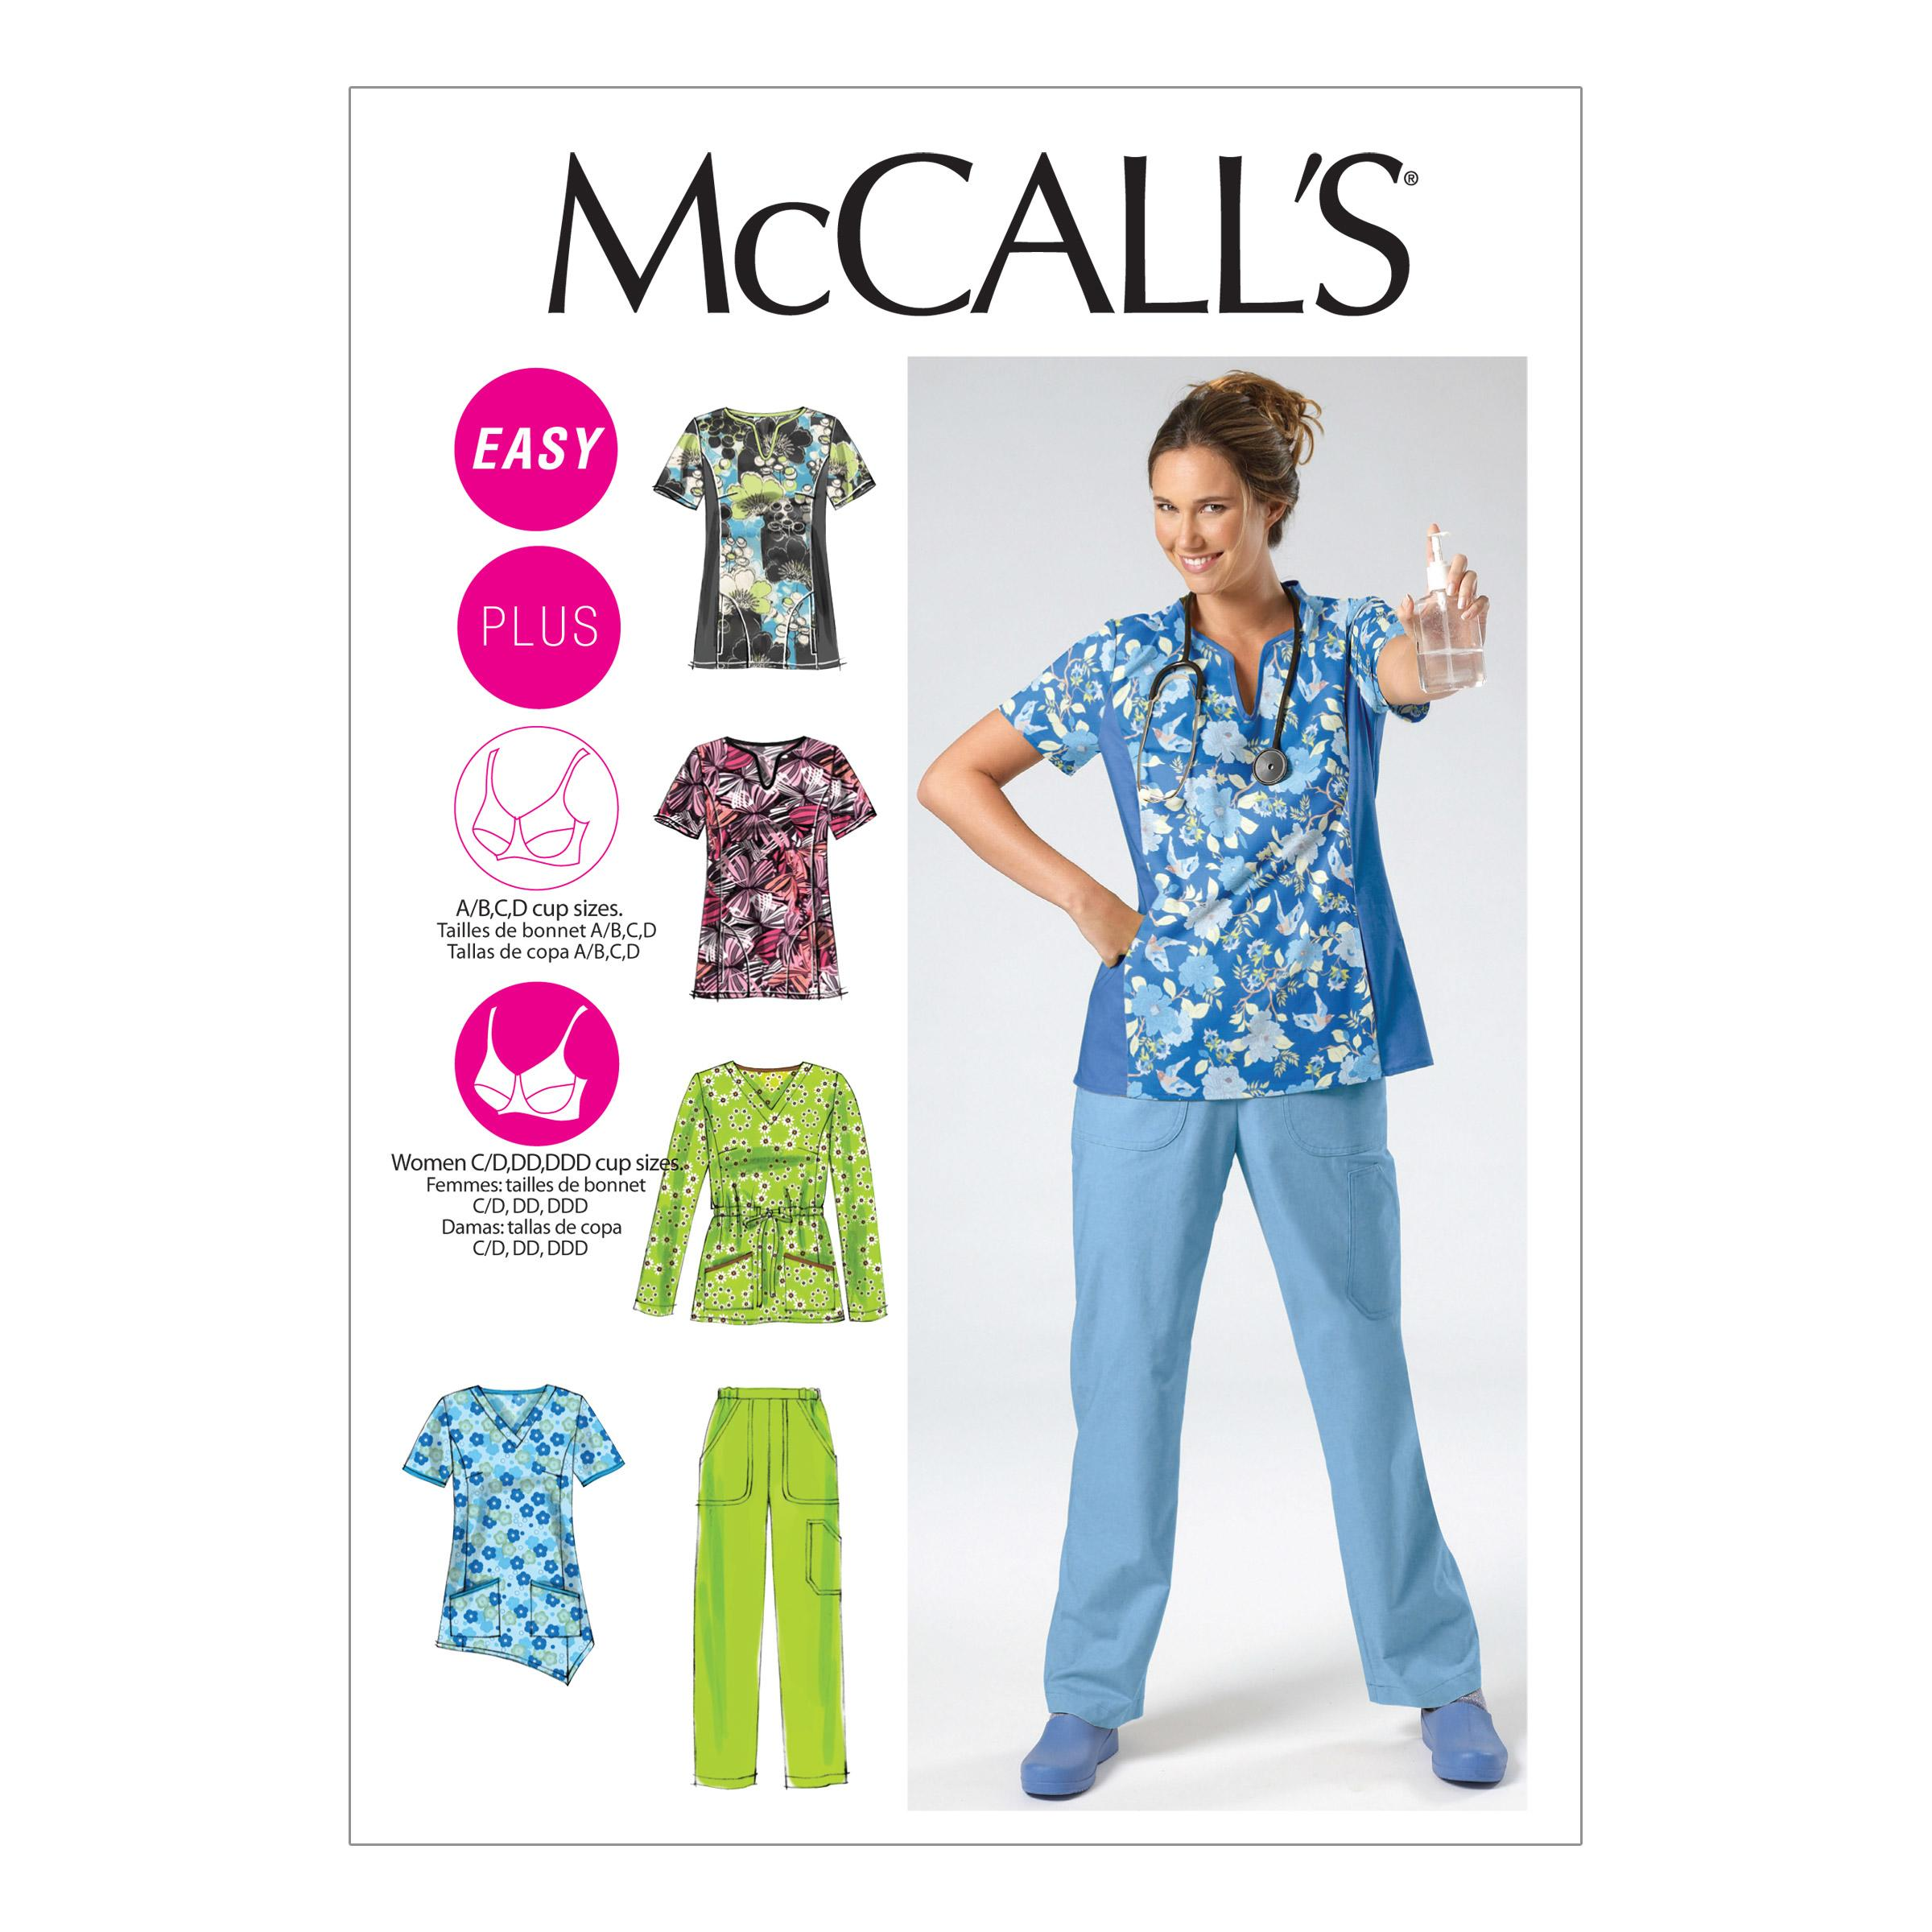 McCalls M6473 A/B, C & D Cup Sizes, Uniforms